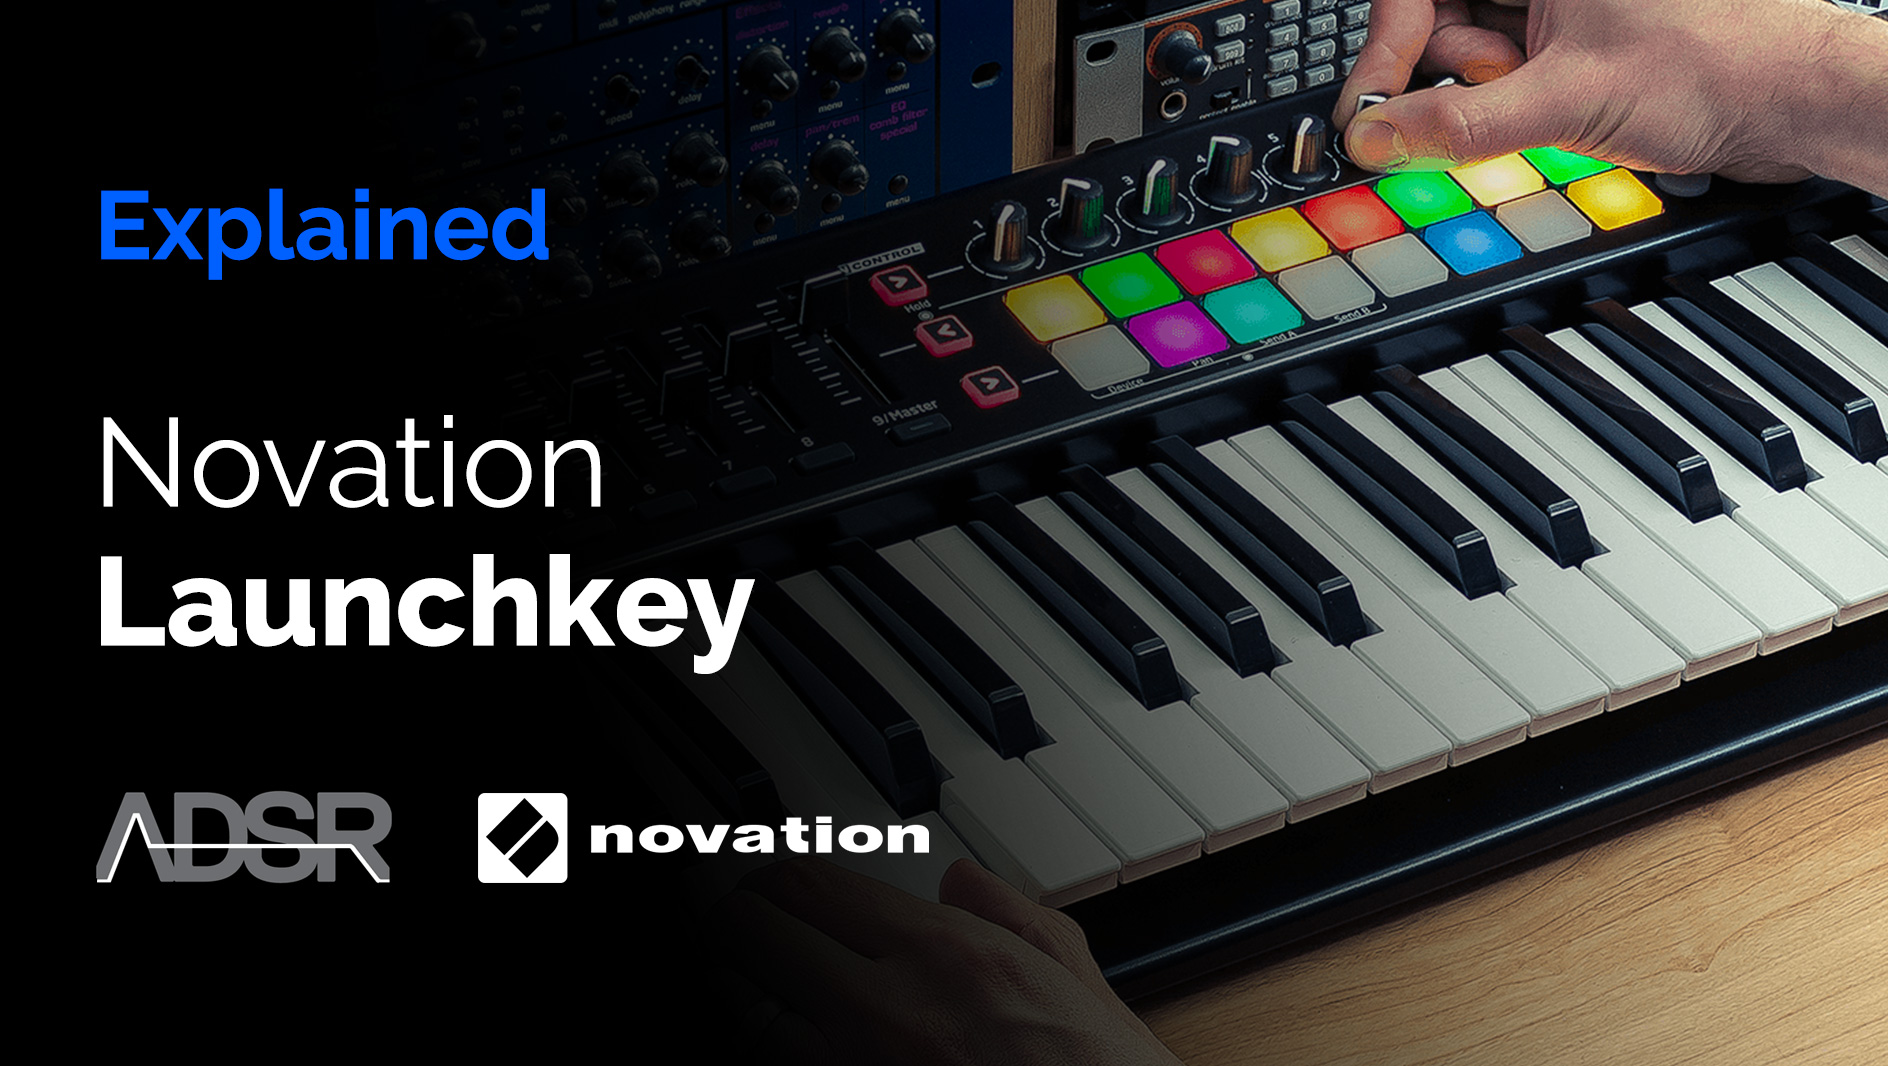 Novation Launchkey Explained